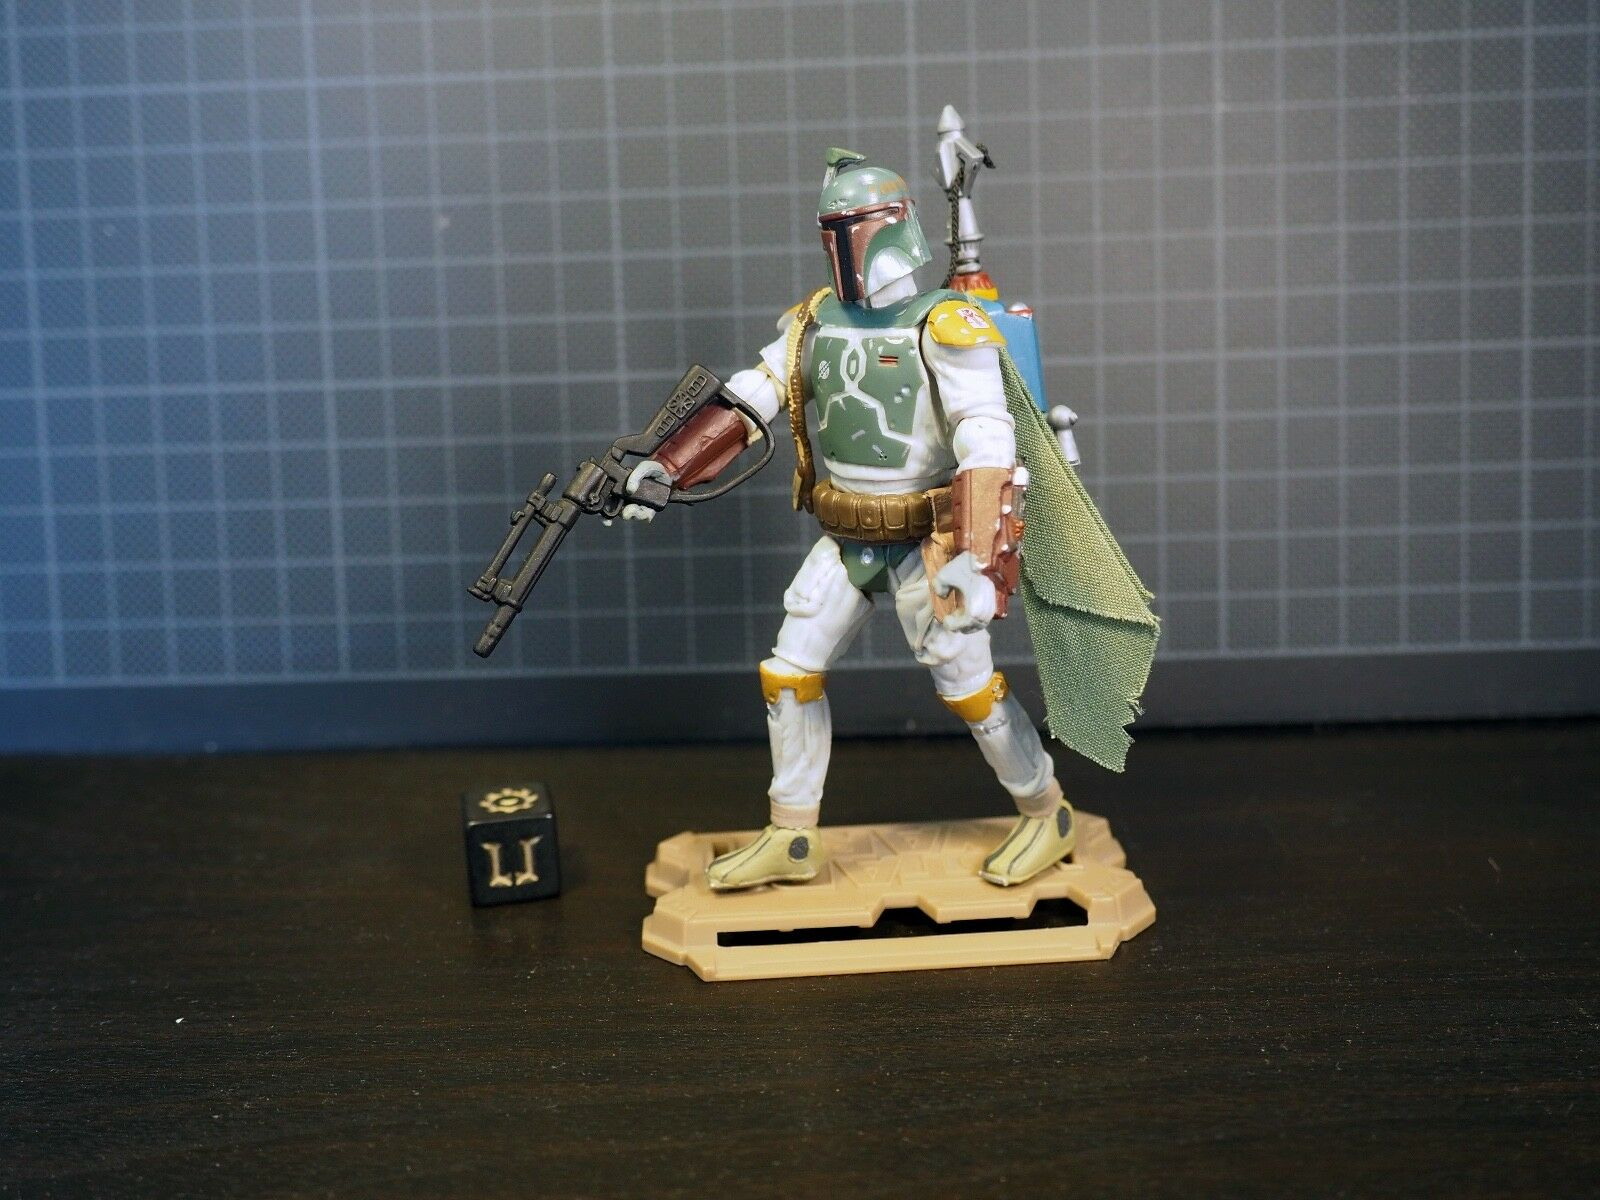 Star Wars Sail Barge Skiff grappling hook jetpack Boba Fett MH 24 Movie Heroes